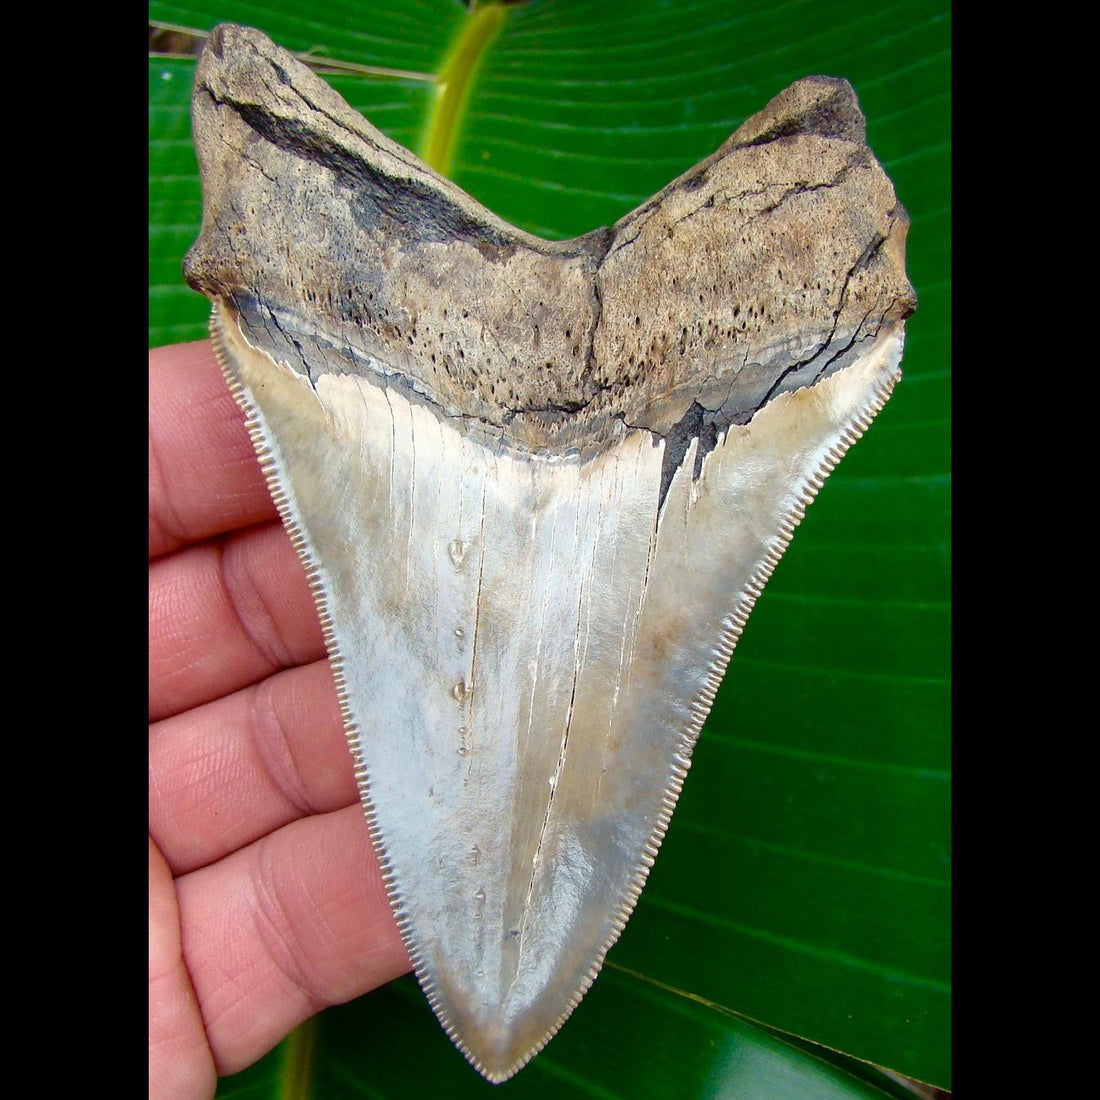 Megalodon Tooth 4 & 3/16 in. South Carolina Megalodon Shark Tooth